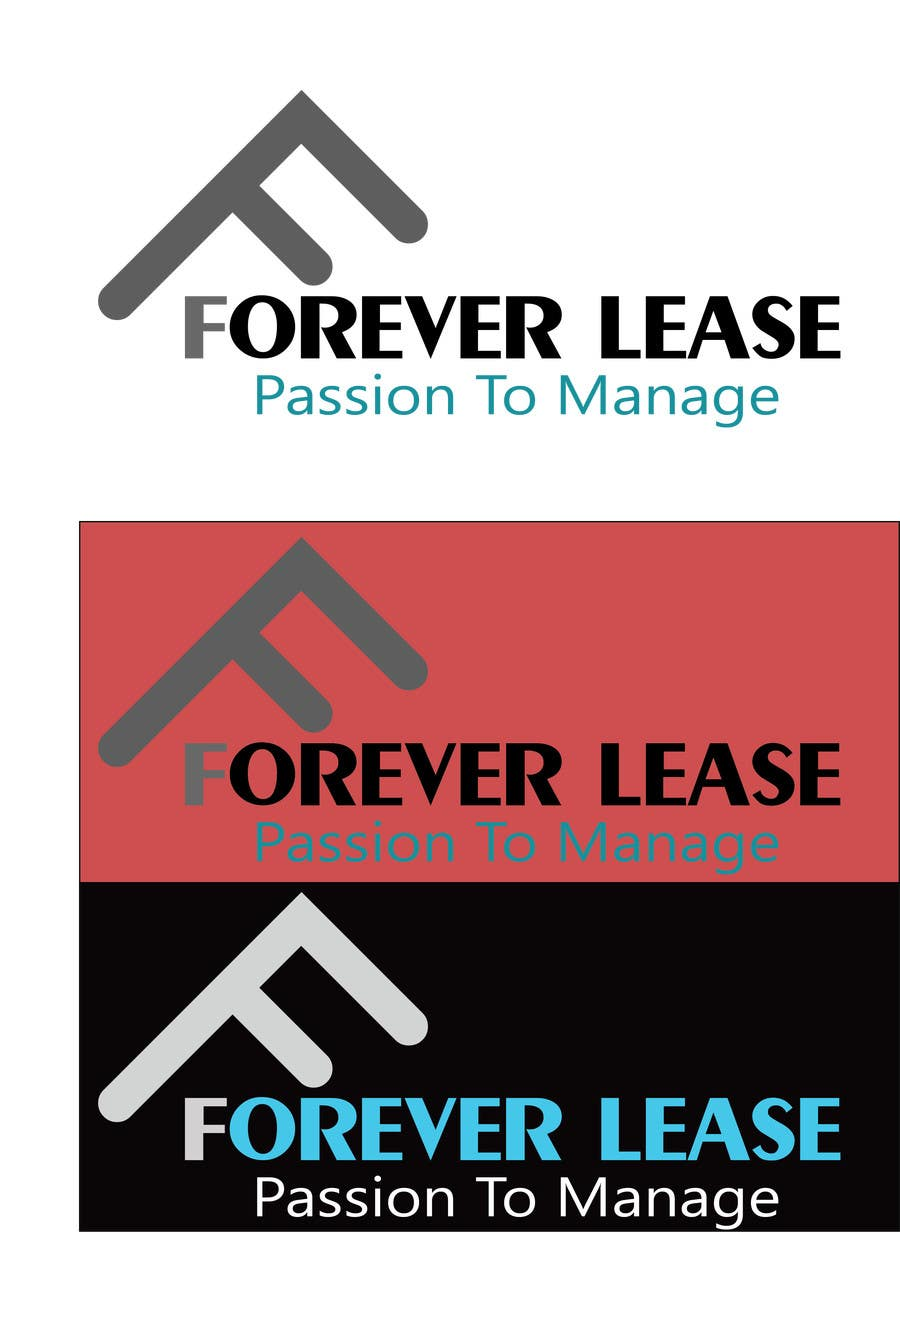 Konkurrenceindlæg #                                        11                                      for                                         Design a Logo for a Property Leasing Company